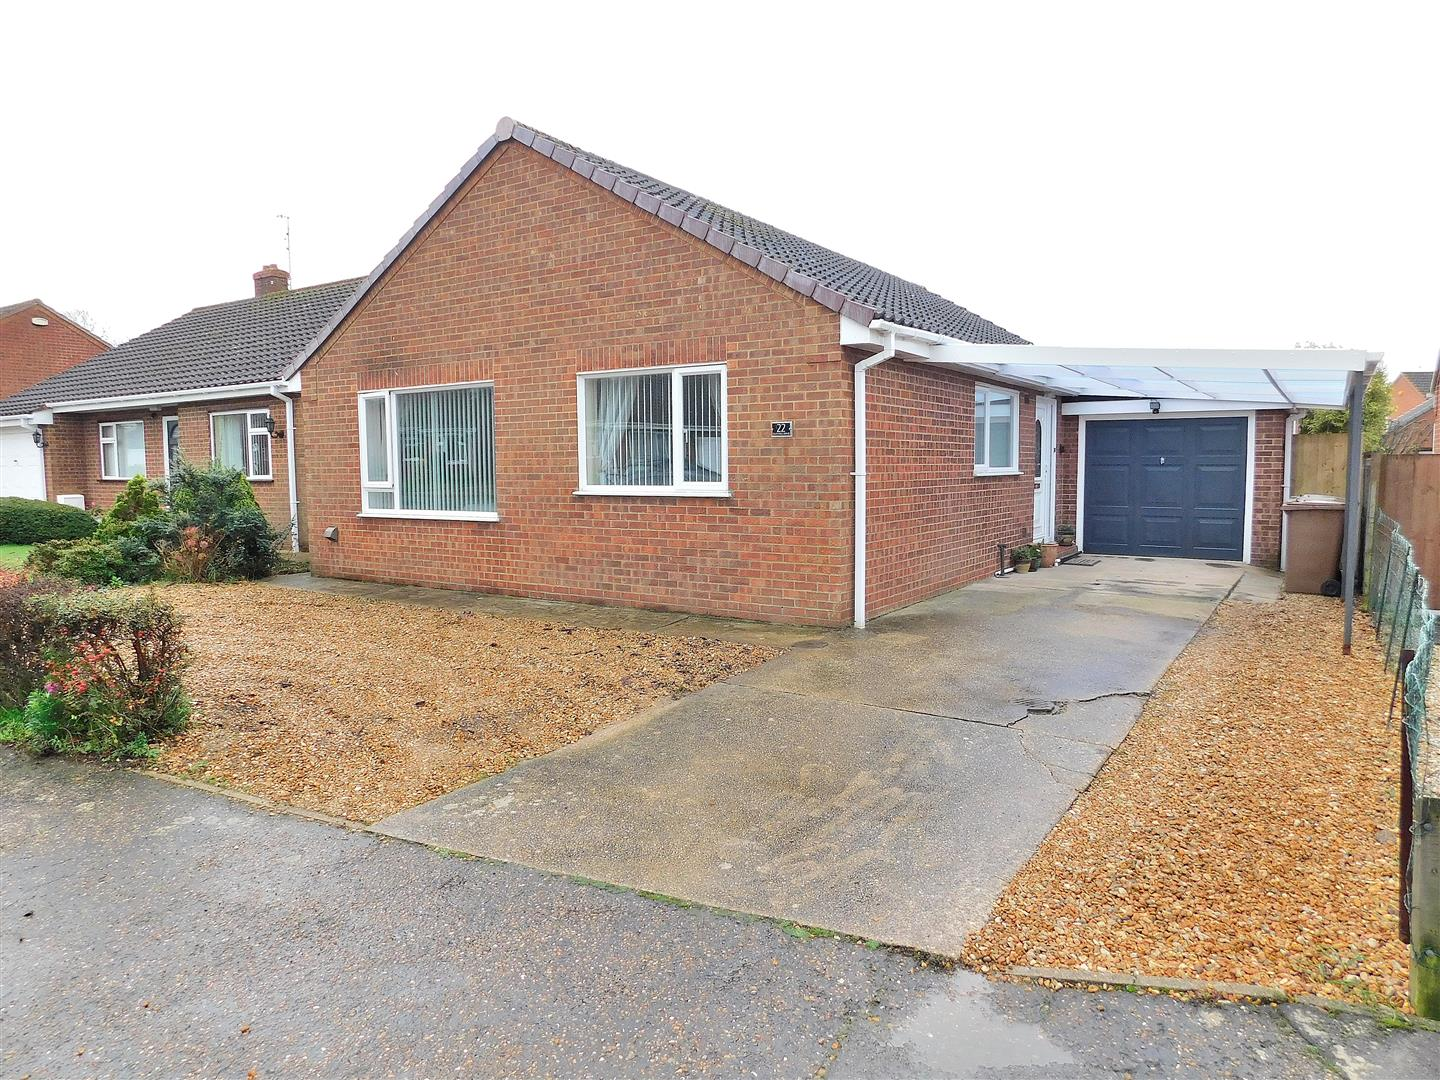 3 bed detached bungalow for sale in King's Lynn, PE31 6JT - Property Image 1